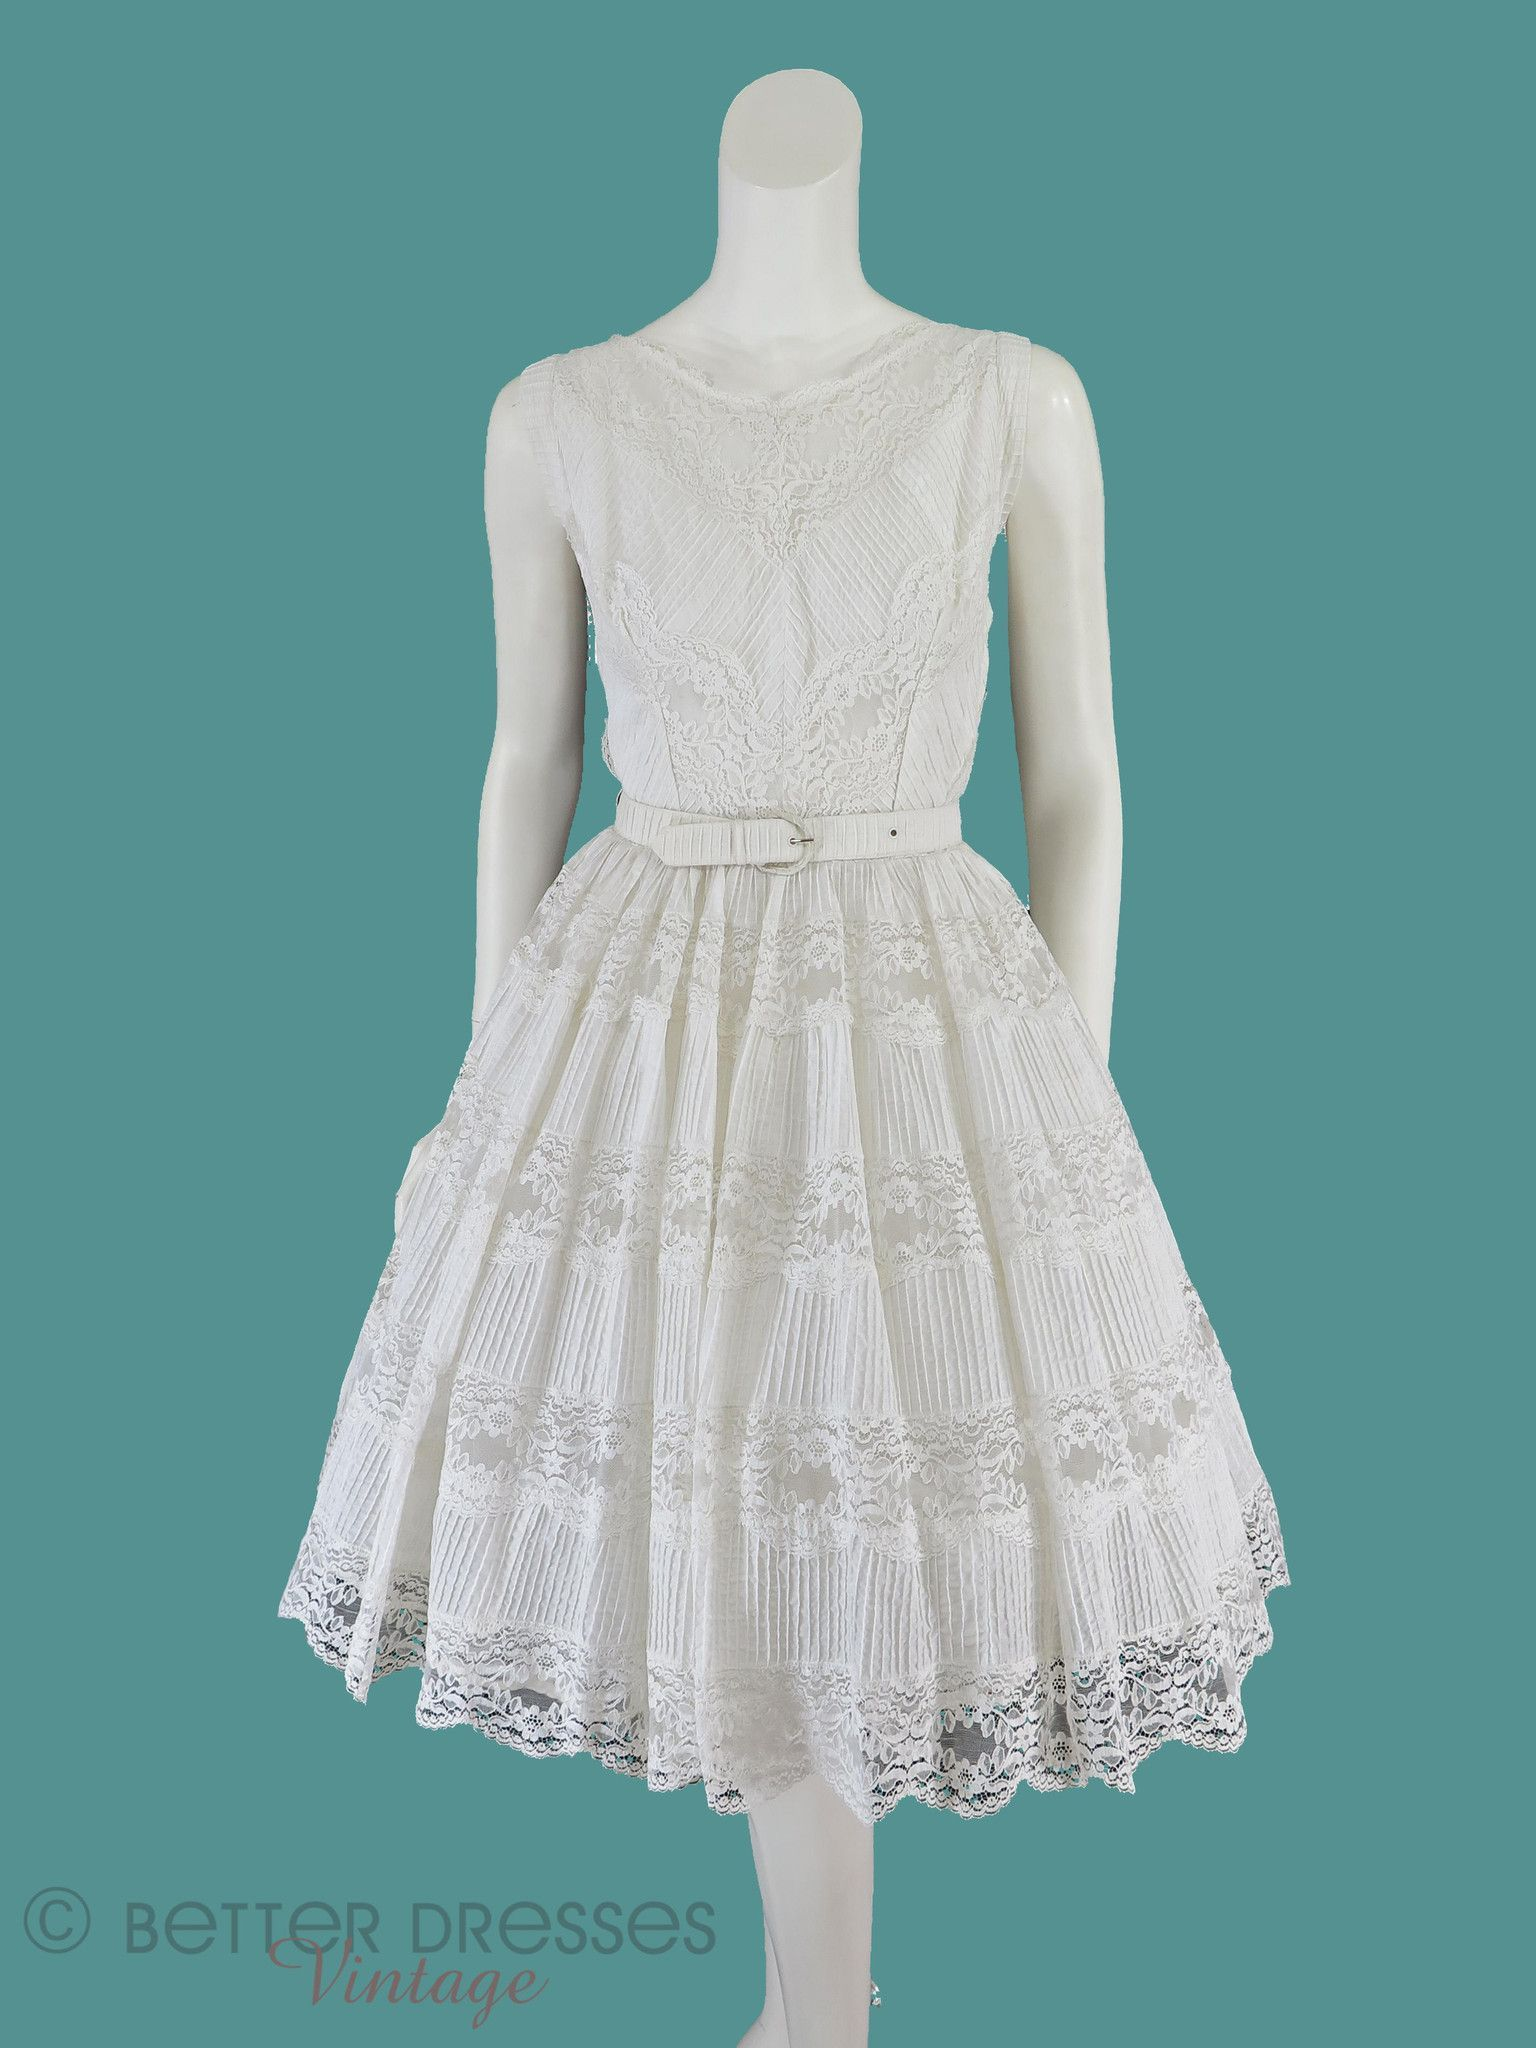 50s White Lace Full Skirt Party Dress - sm   Full skirts, White lace ...